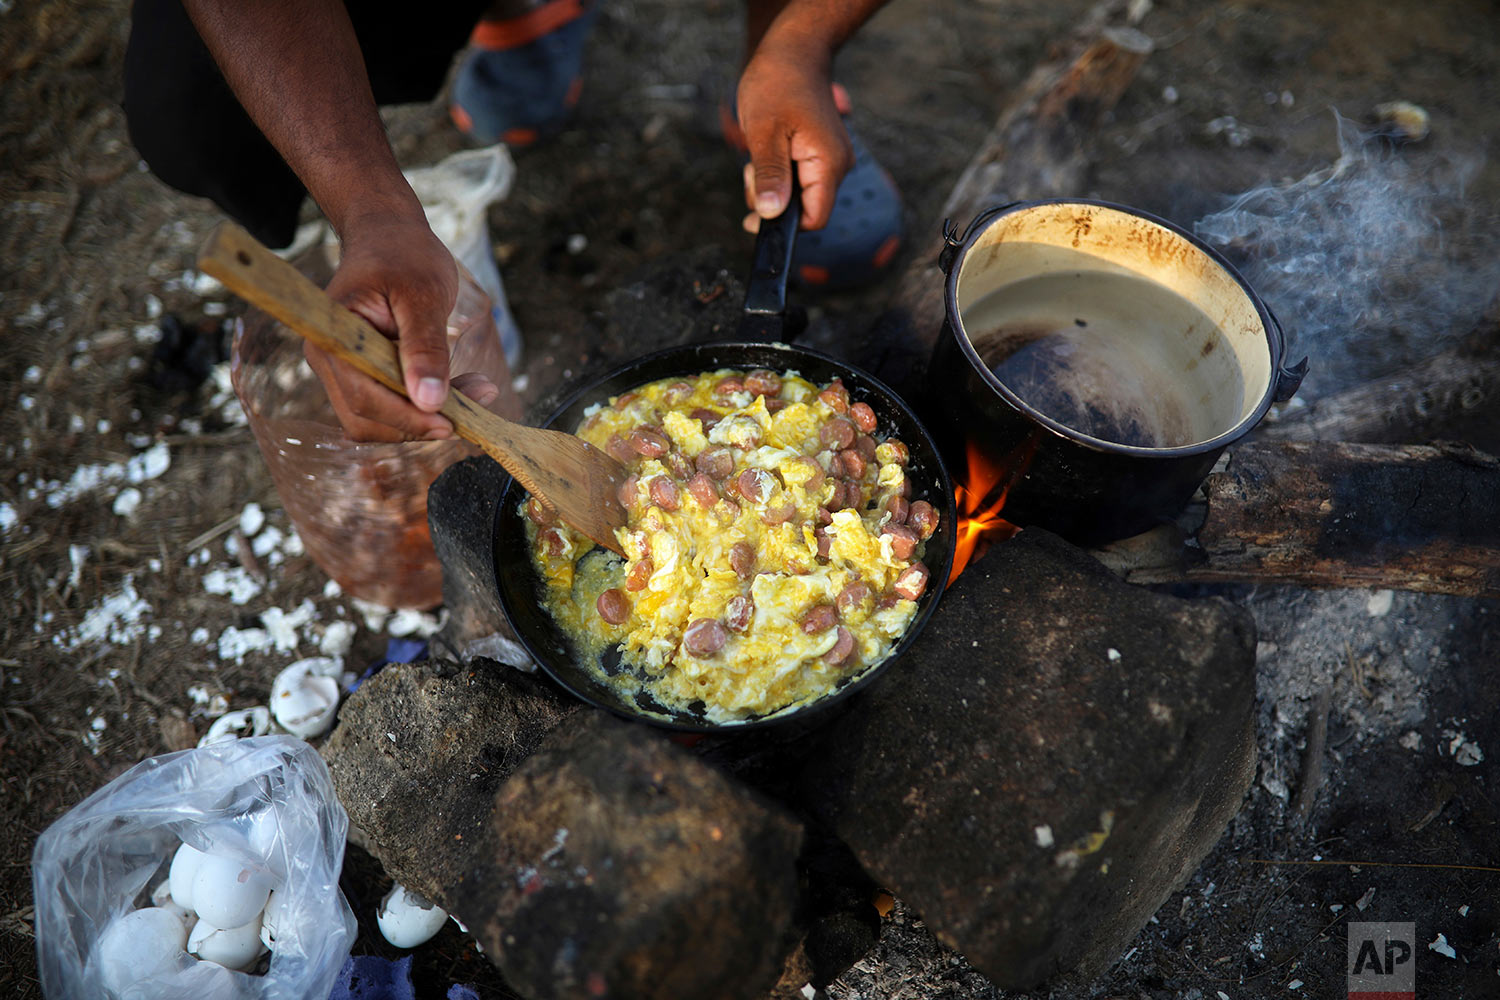 Elmer Zelaya of El Salvador prepares a breakfast of eggs and sausage for his family of five, at the sports club where Central American migrants traveling with the annual Stations of the Cross caravan are camped out in Matias Romero, Oaxaca State, Mexico, Wednesday, April 4, 2018. (AP Photo/Felix Marquez)